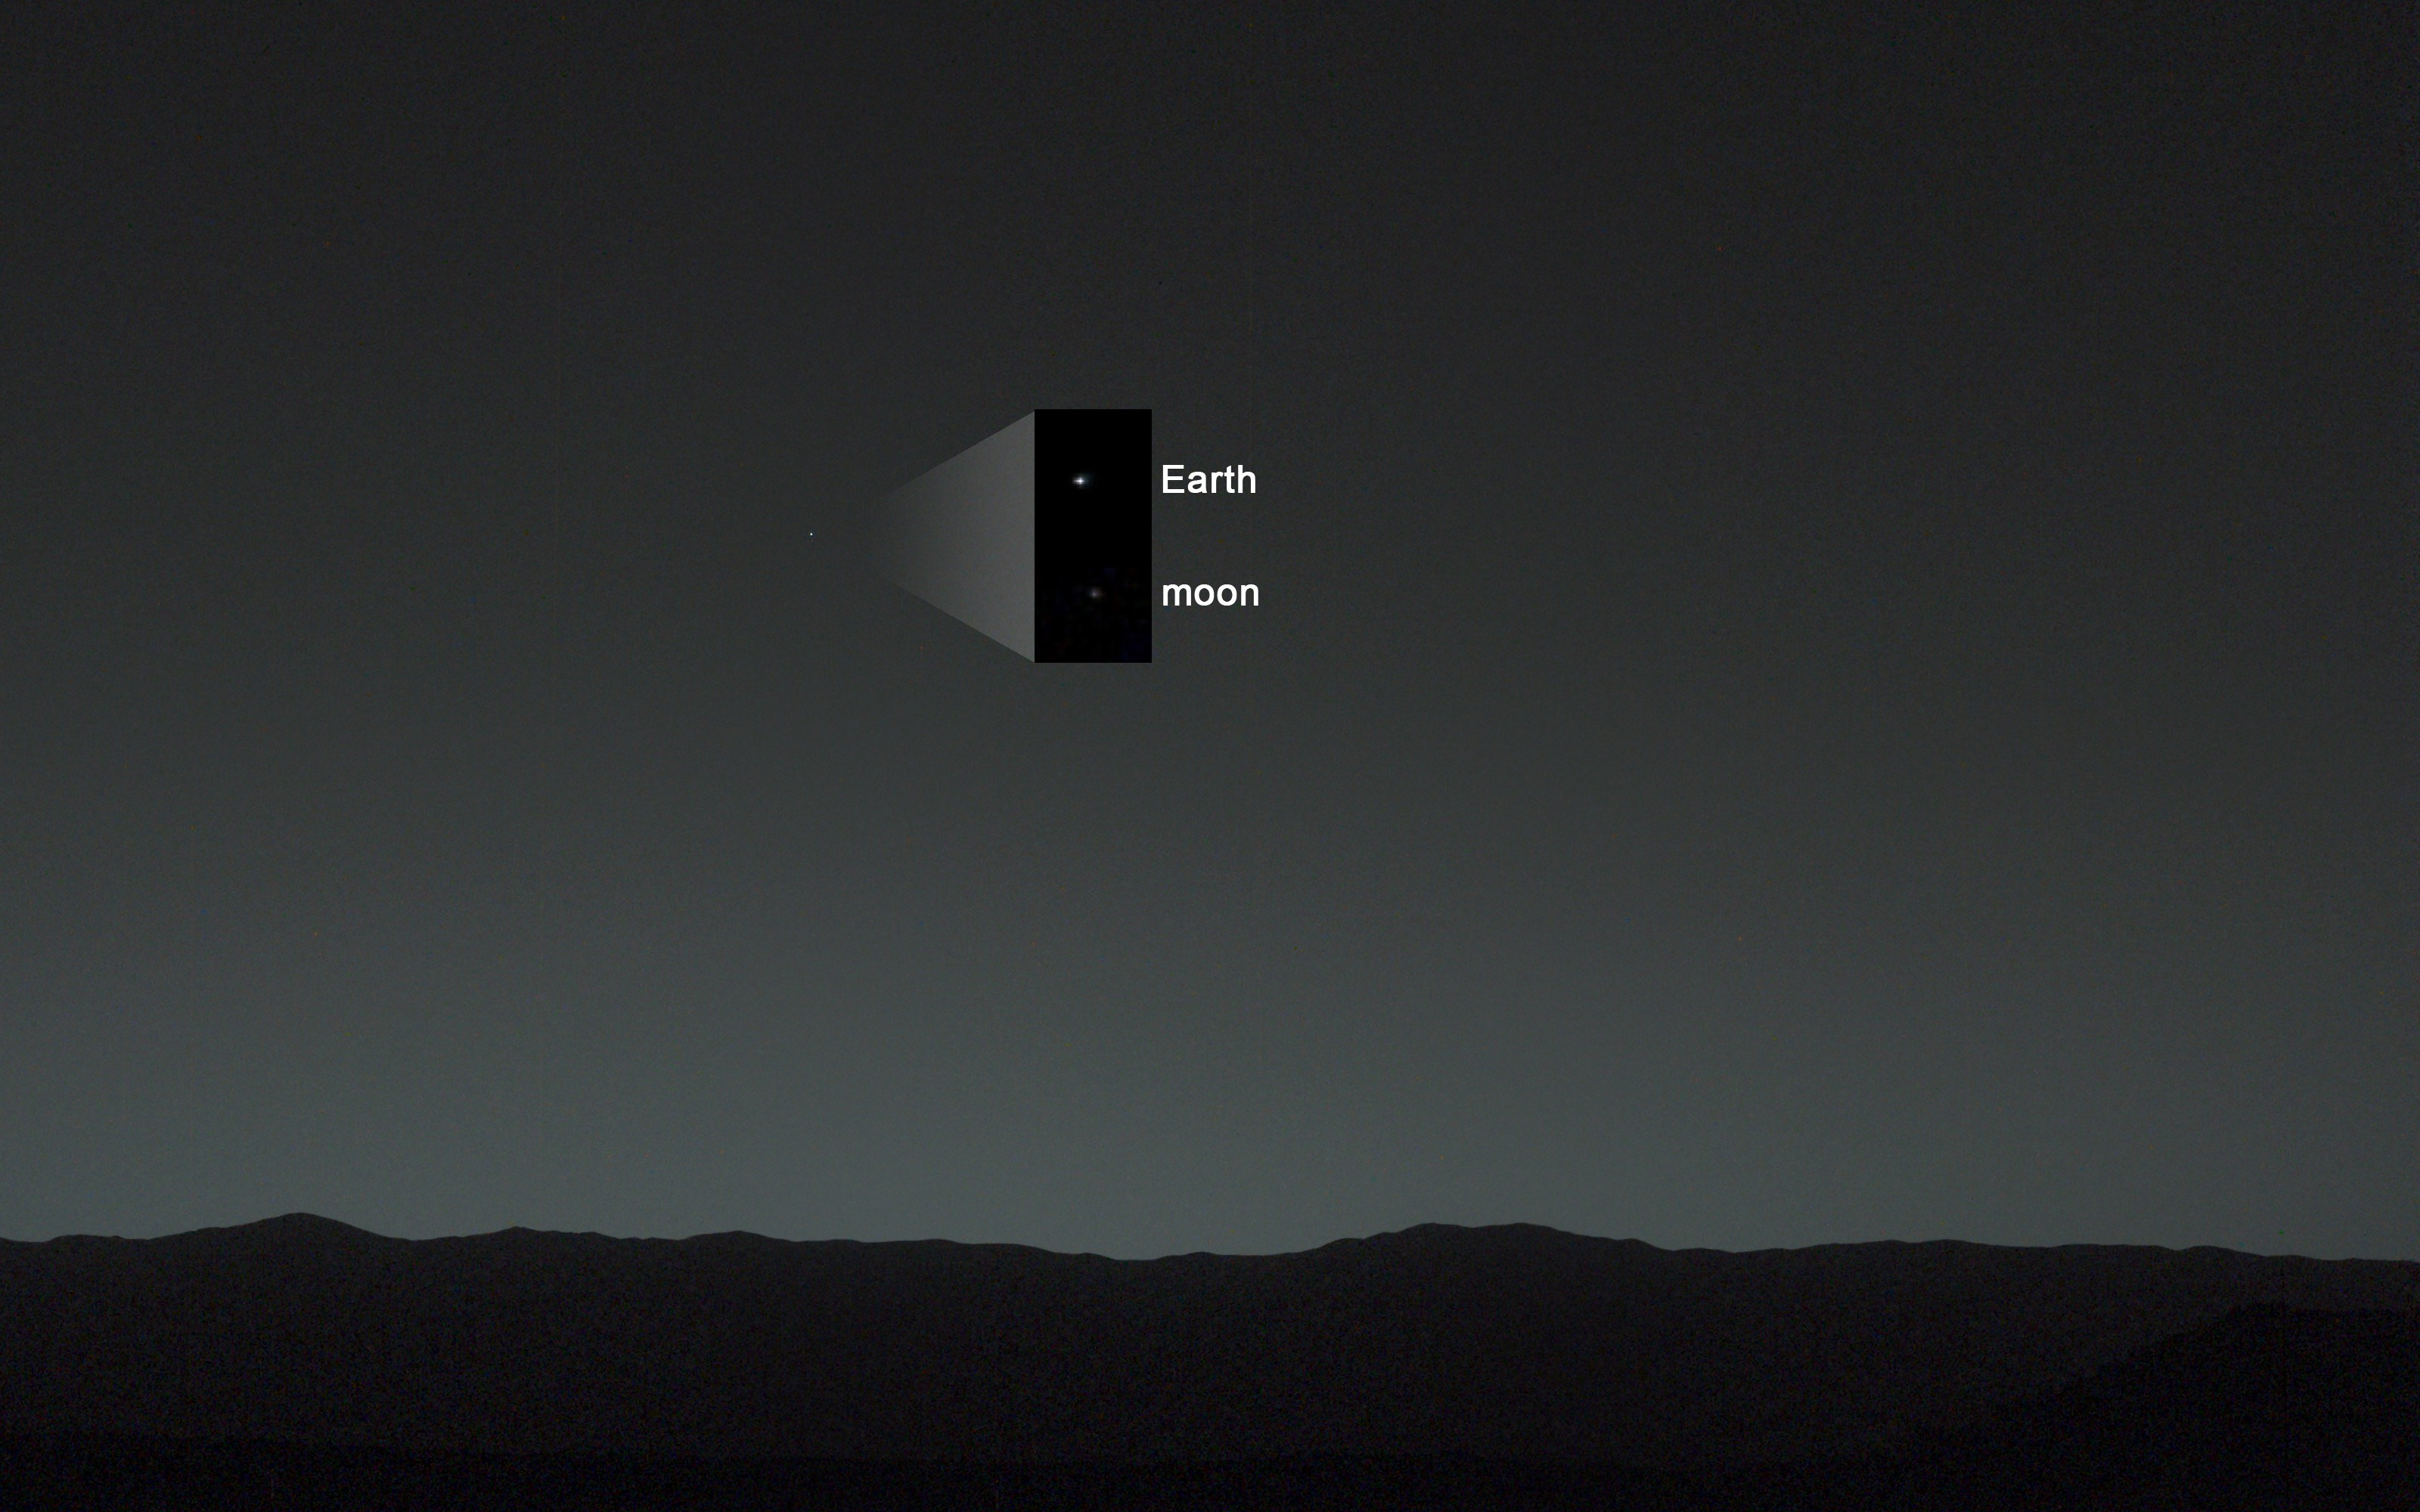 Real photo of Earth and Moon from Mars by NASA's curiosity rover